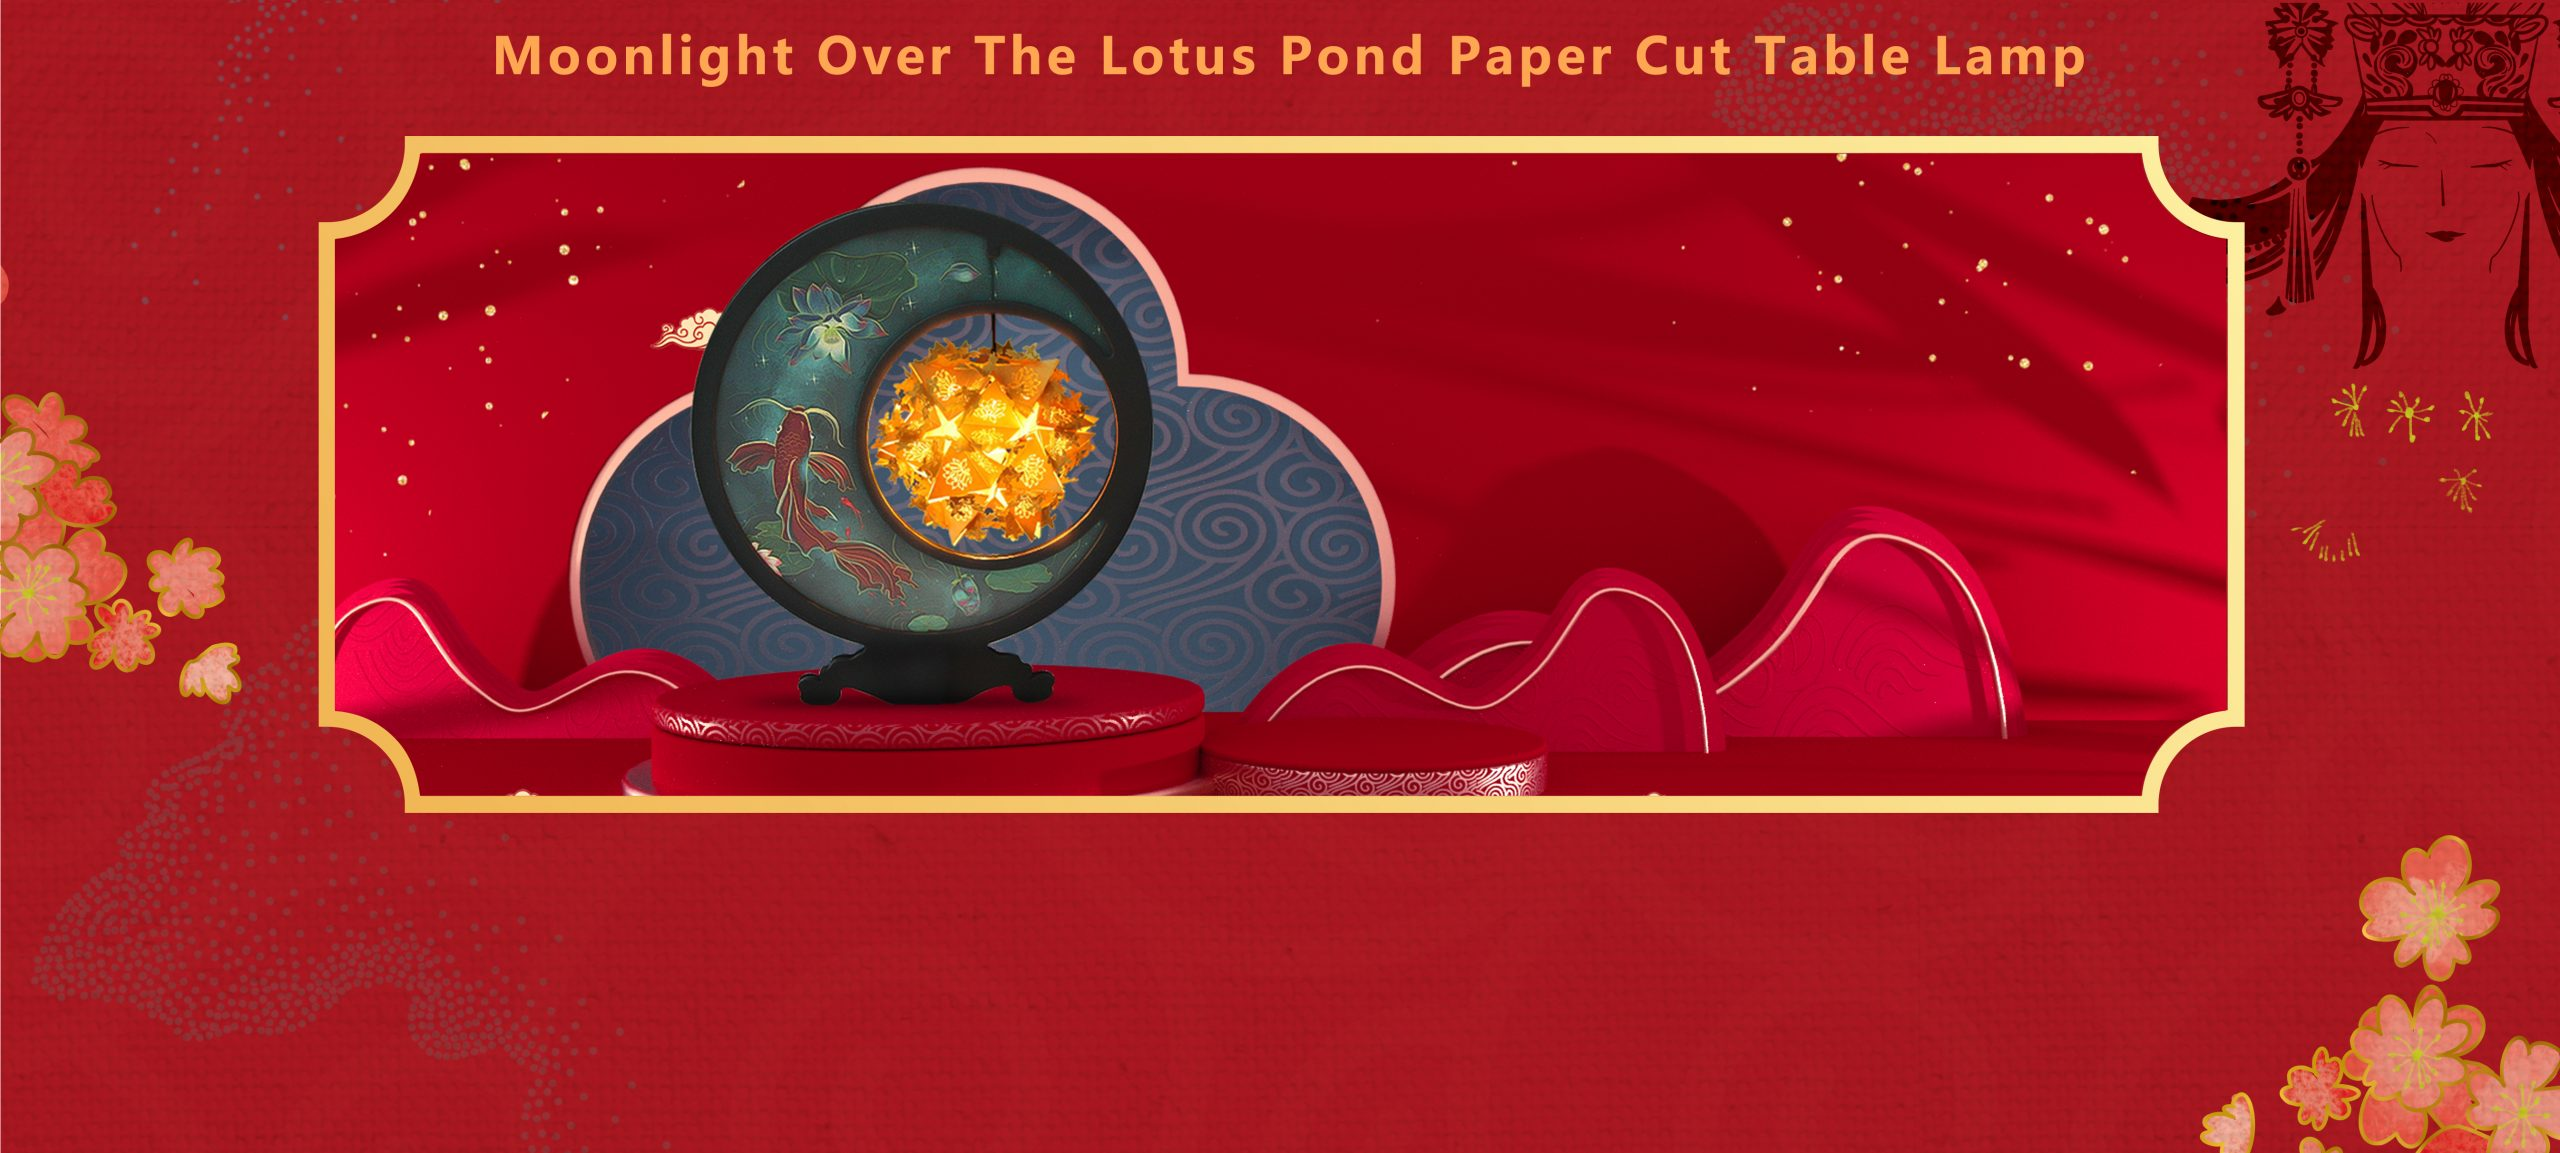 Moonlight Over The Lotus Pond PaperCut Table Lamp